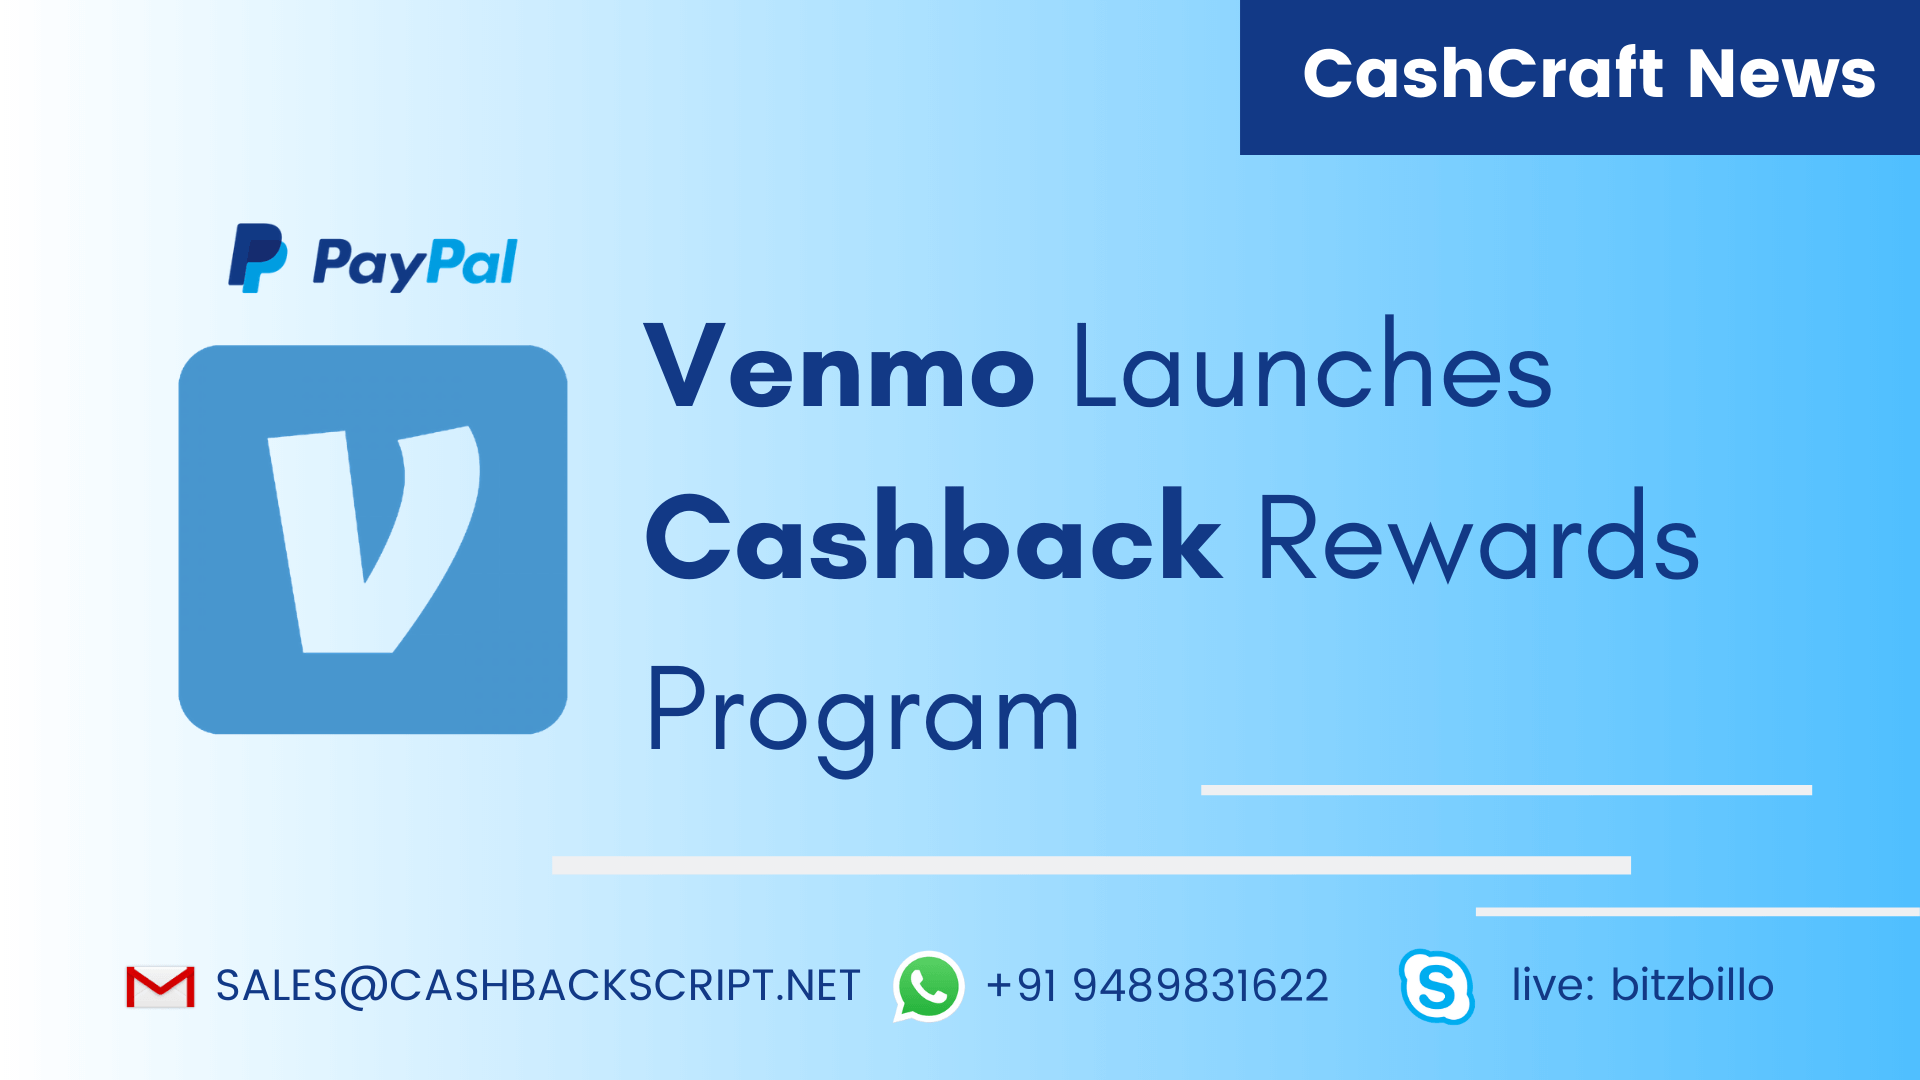 Venmo Launches Cashback Rewards Program